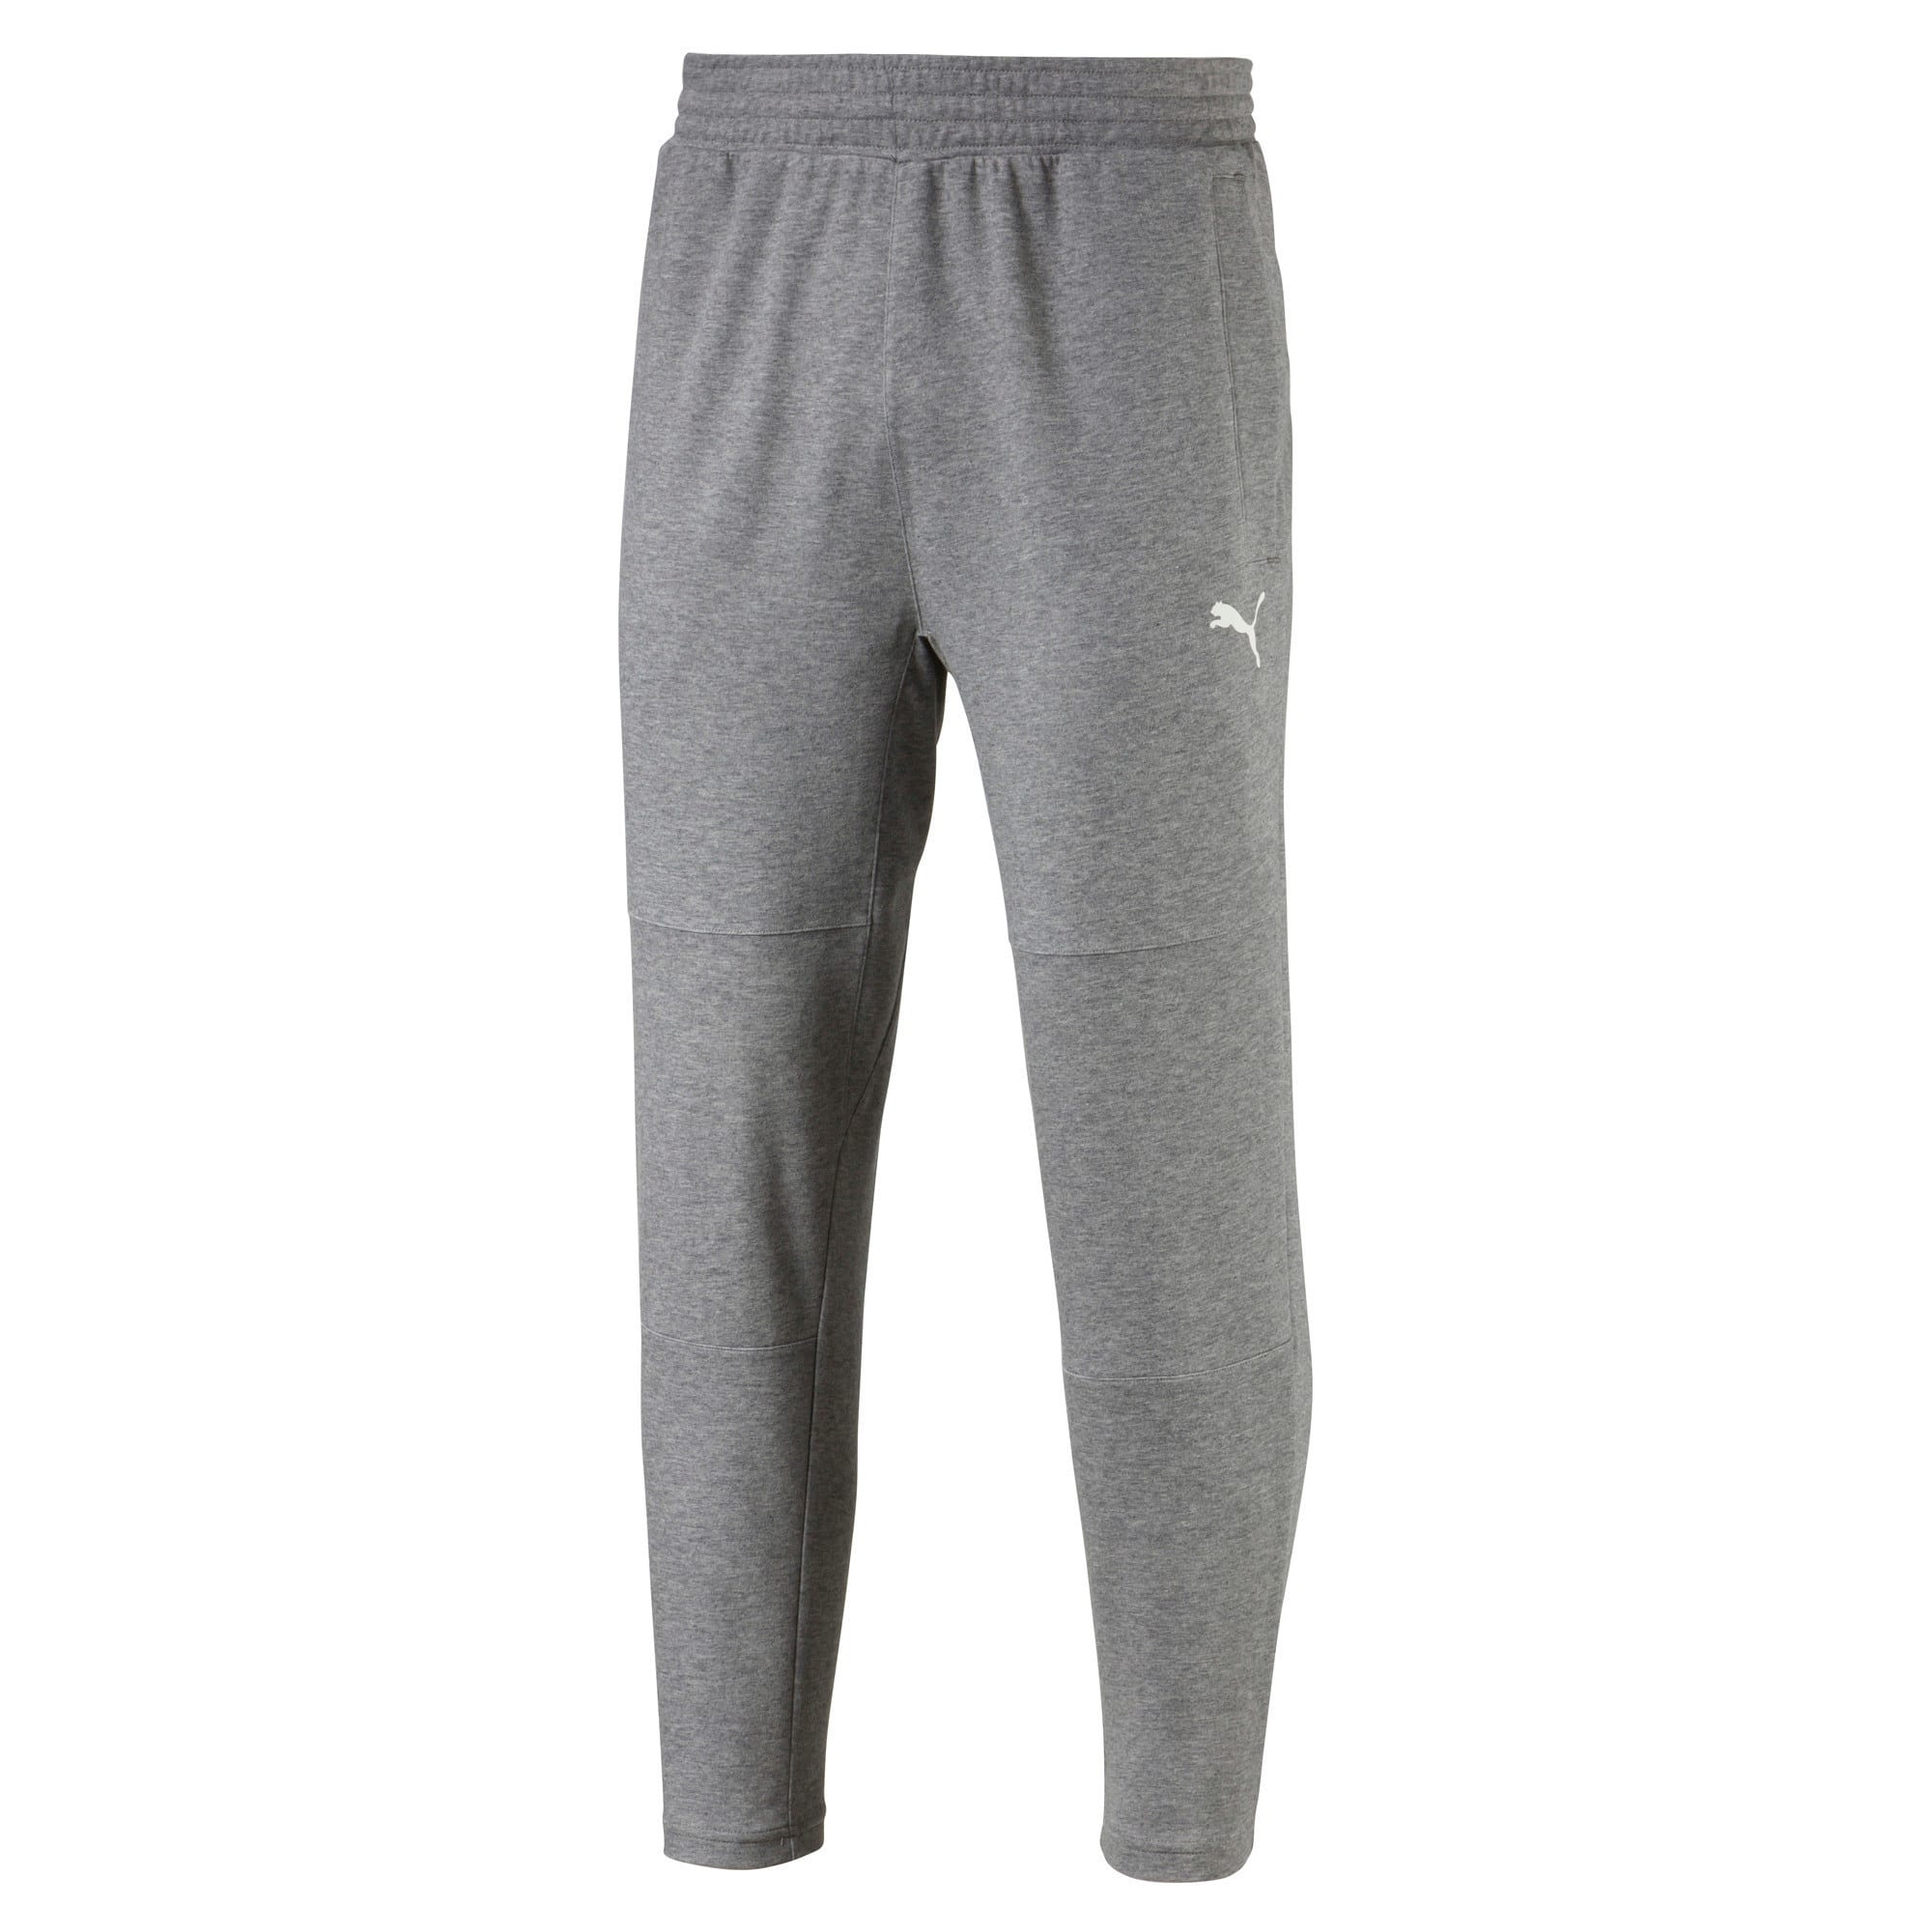 Thumbnail 4 of Knitted Men's Training Pants, Charcoal Gray Heather, medium-IND